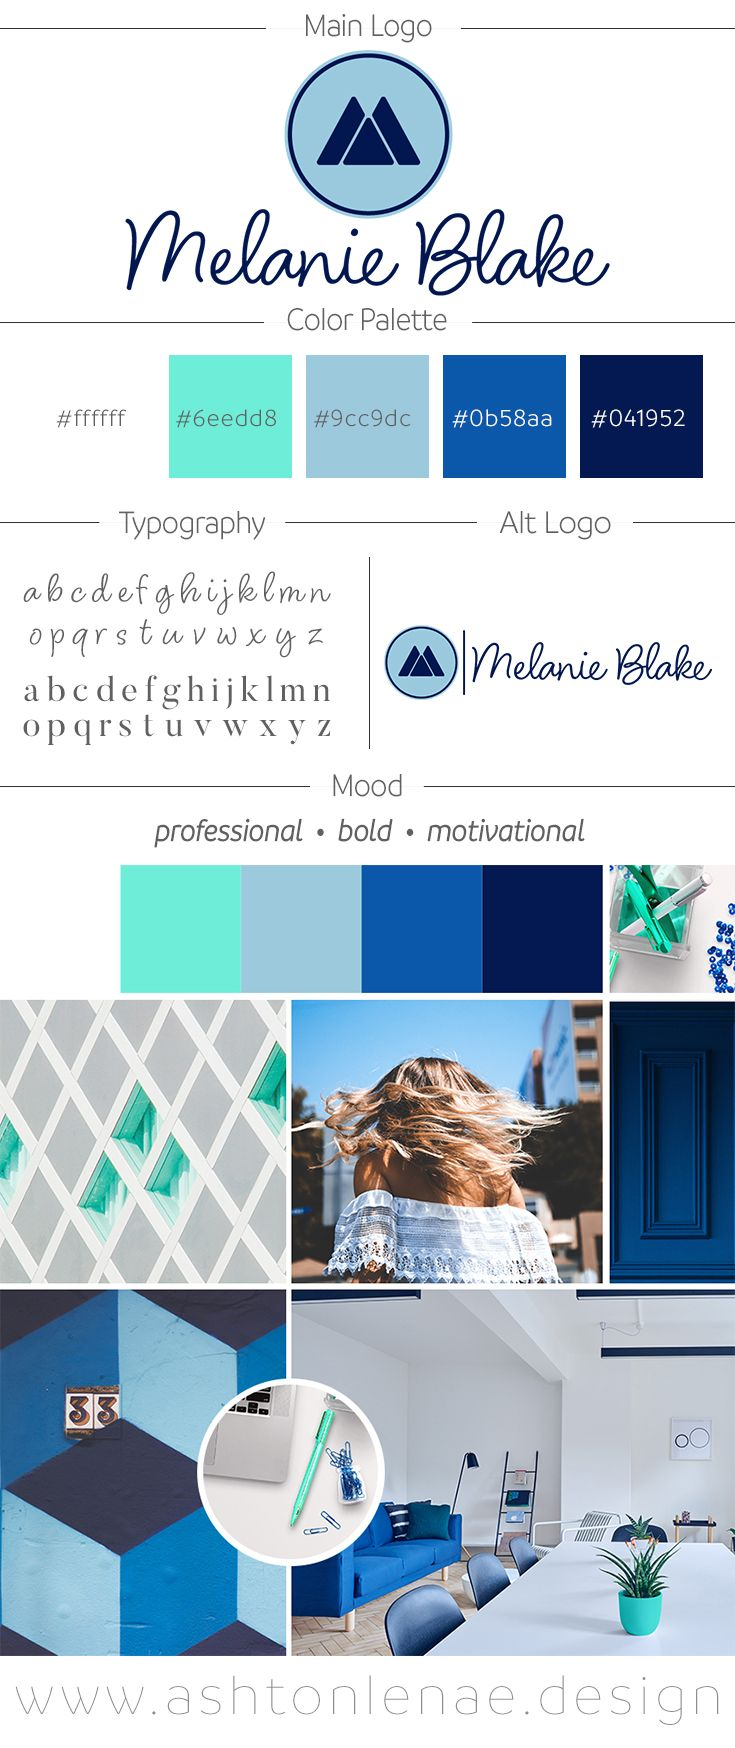 Bold Feminine Powerful Brand Identity Board and Logo